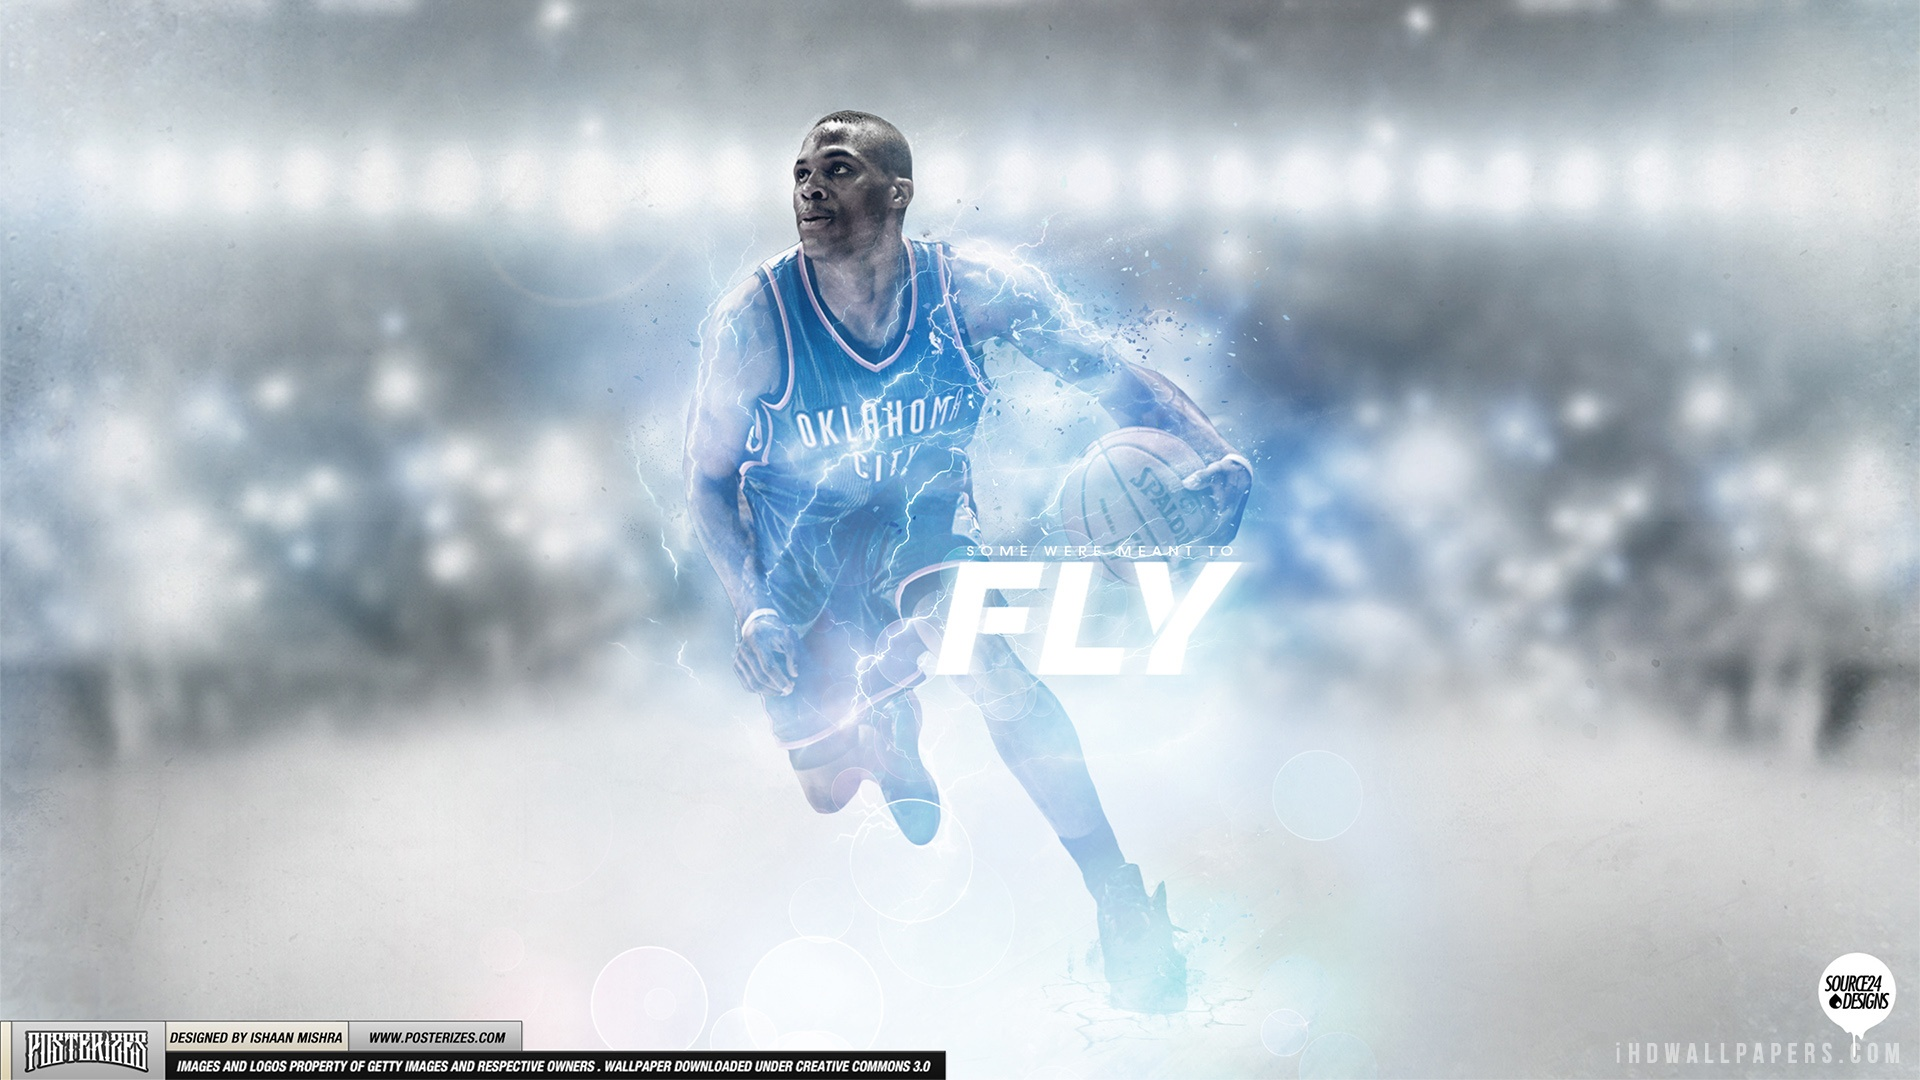 Russell westbrook wallpaper iphone wallpapersafari - Russell Westbrook Hd Wallpaper Ihd Wallpapers